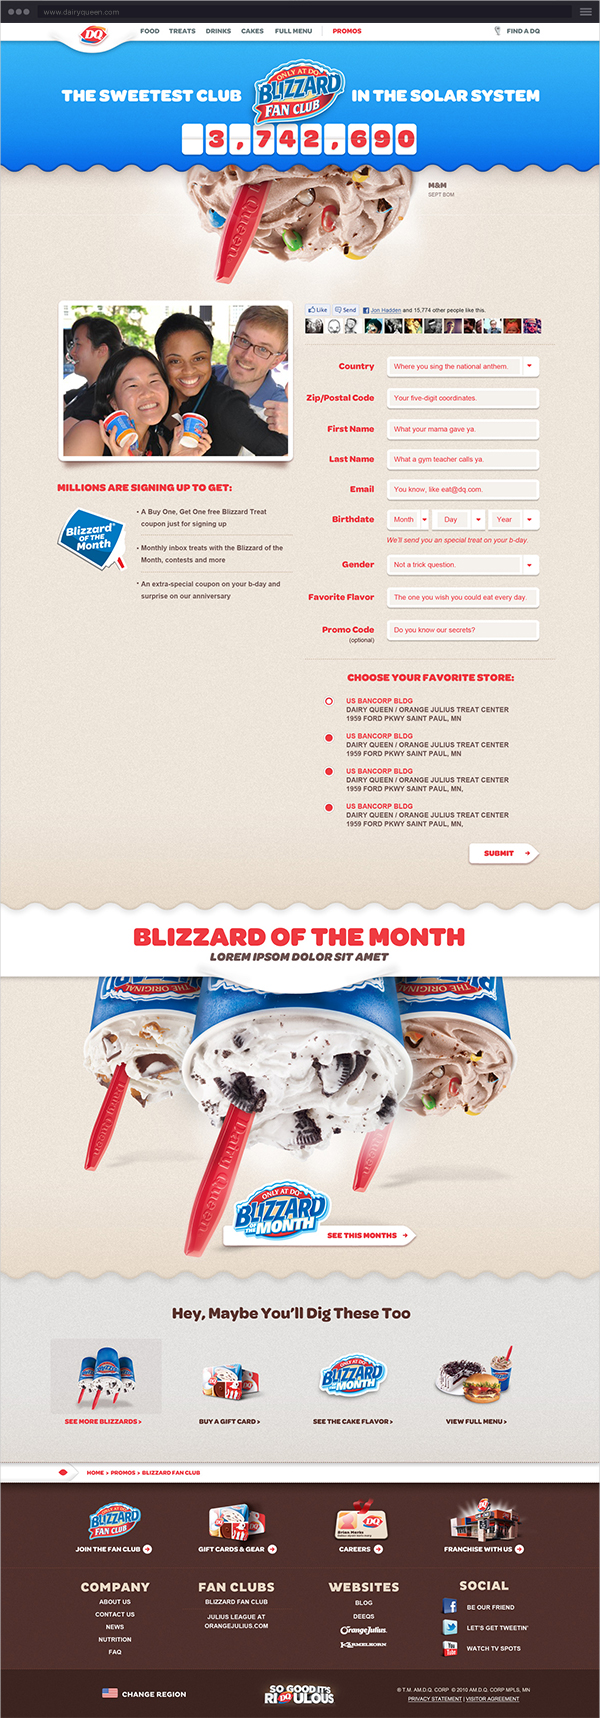 project_page_content_dq_blizzard_fan_club_02.jpg